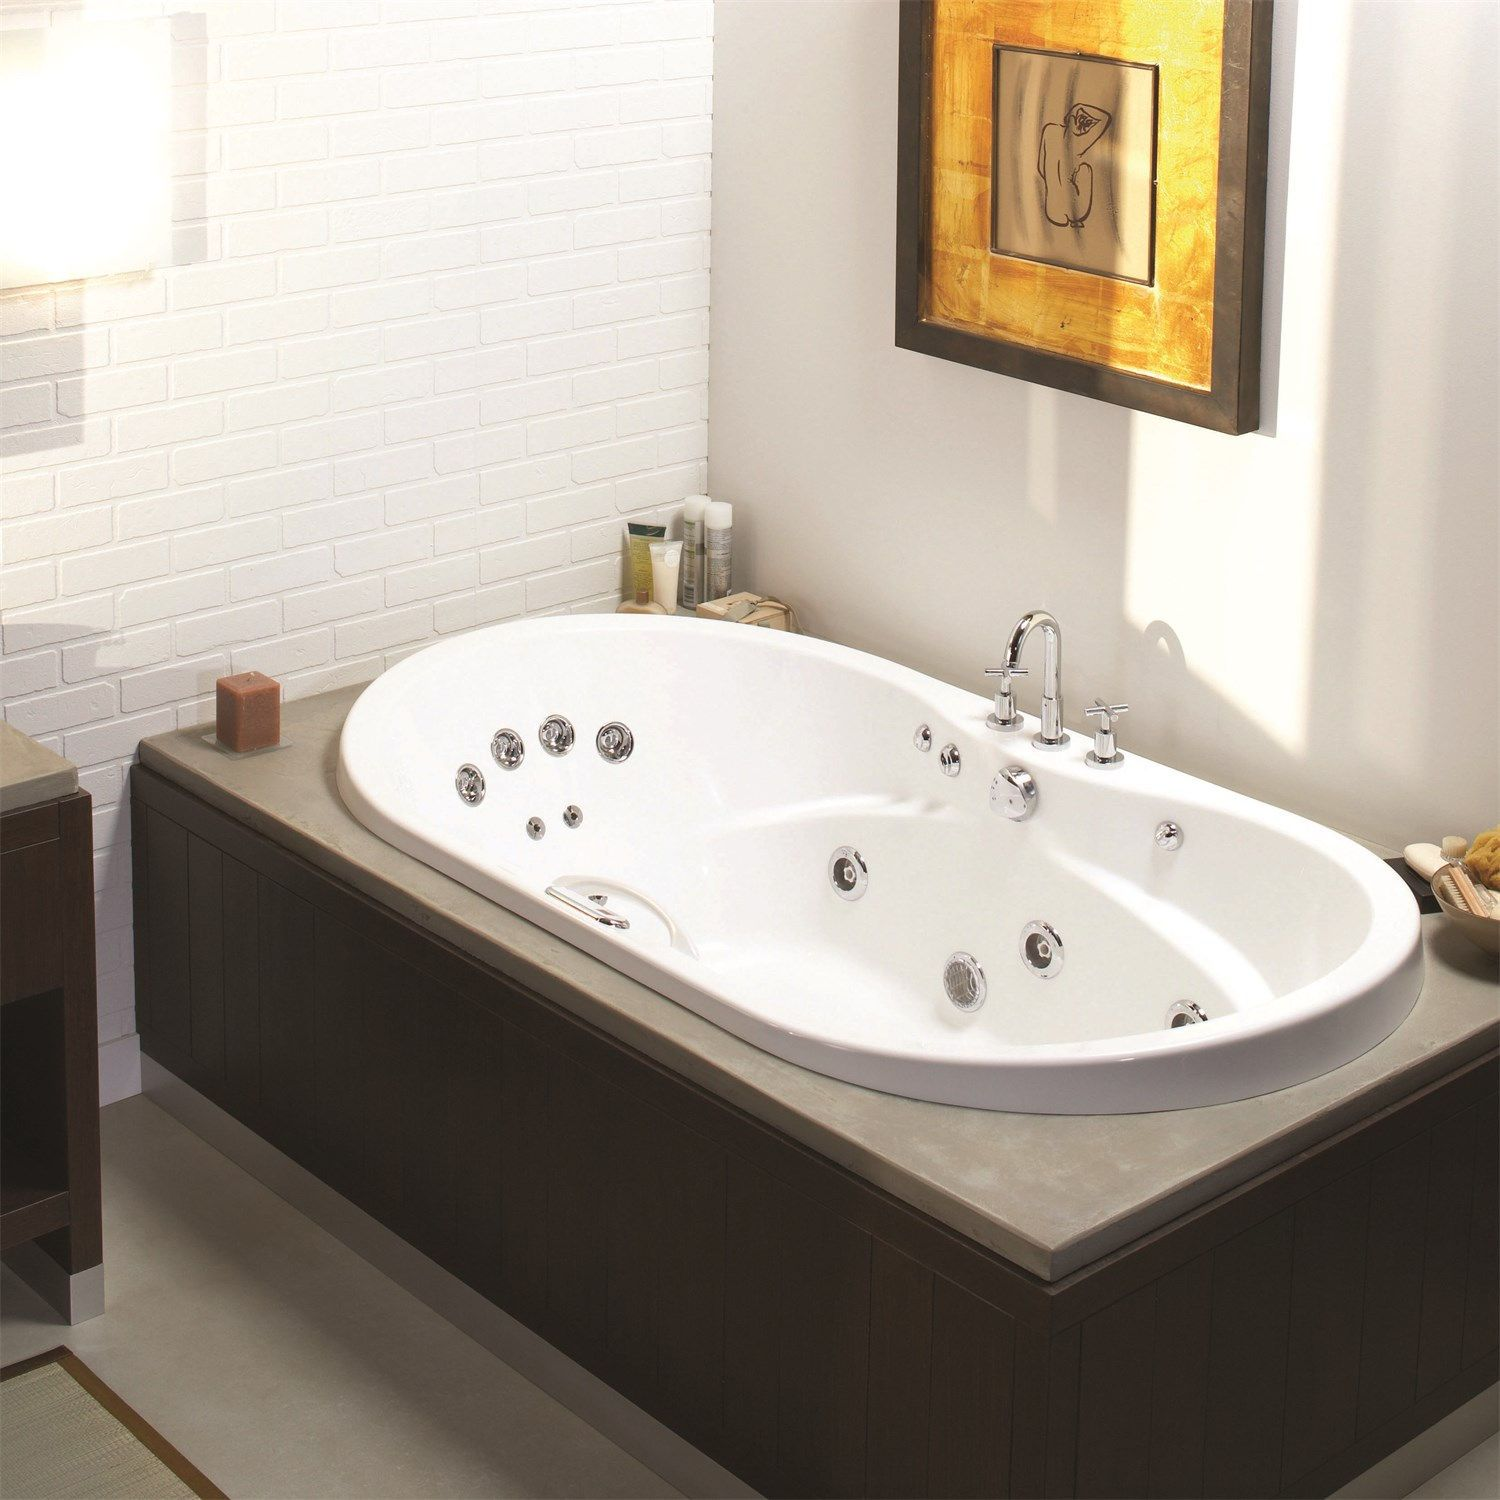 Maax 102759 000 Living 72 X 36 Regular Soaking Tub With Images